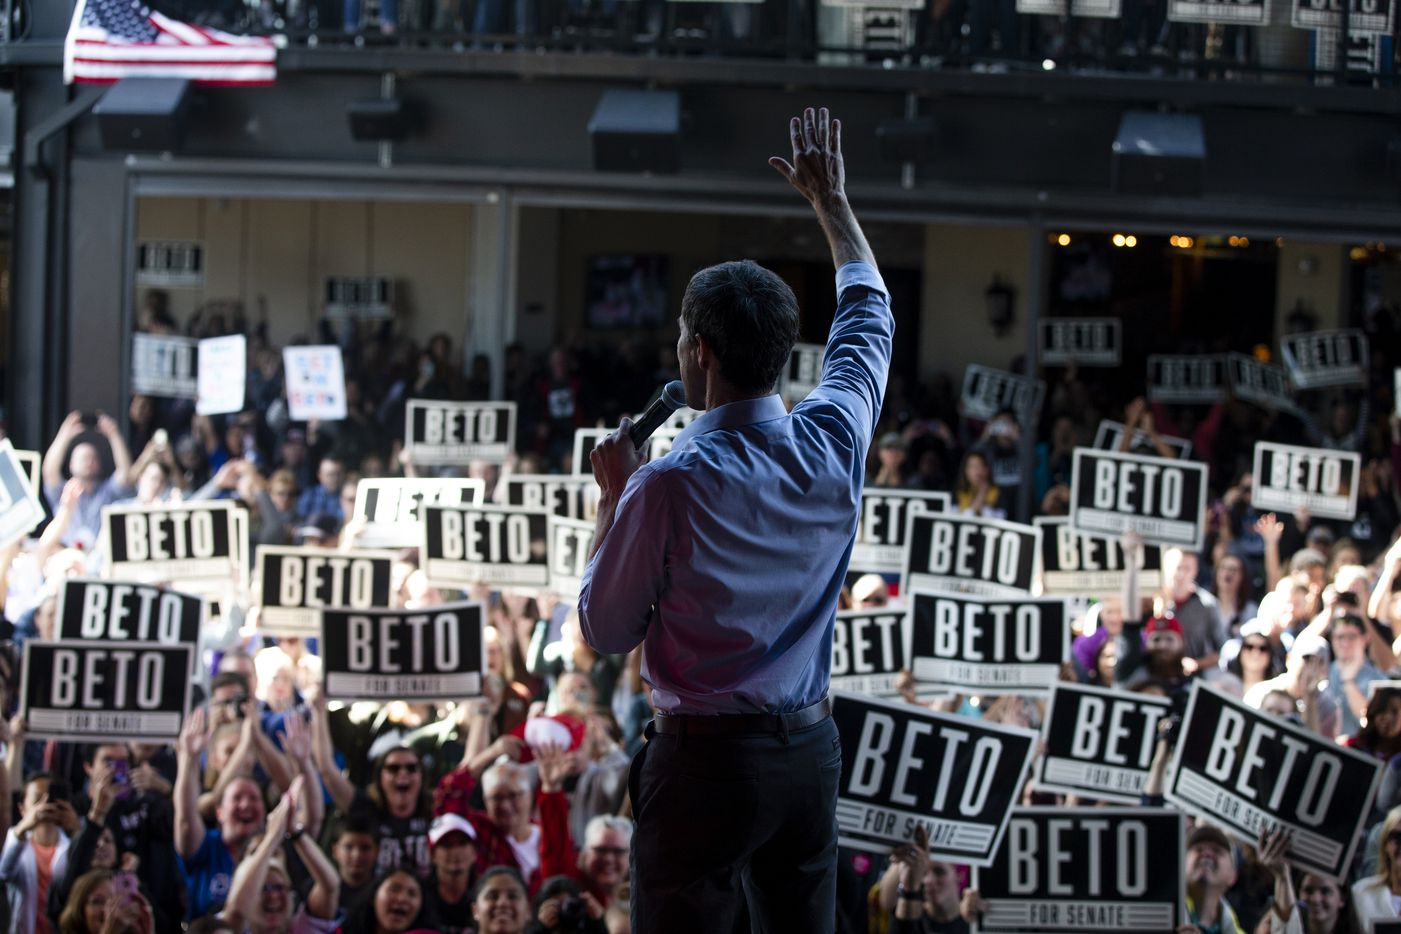 Congressman Beto O'Rourke campaigns at Lava Cantina in The Colony on Oct. 20, 2018.